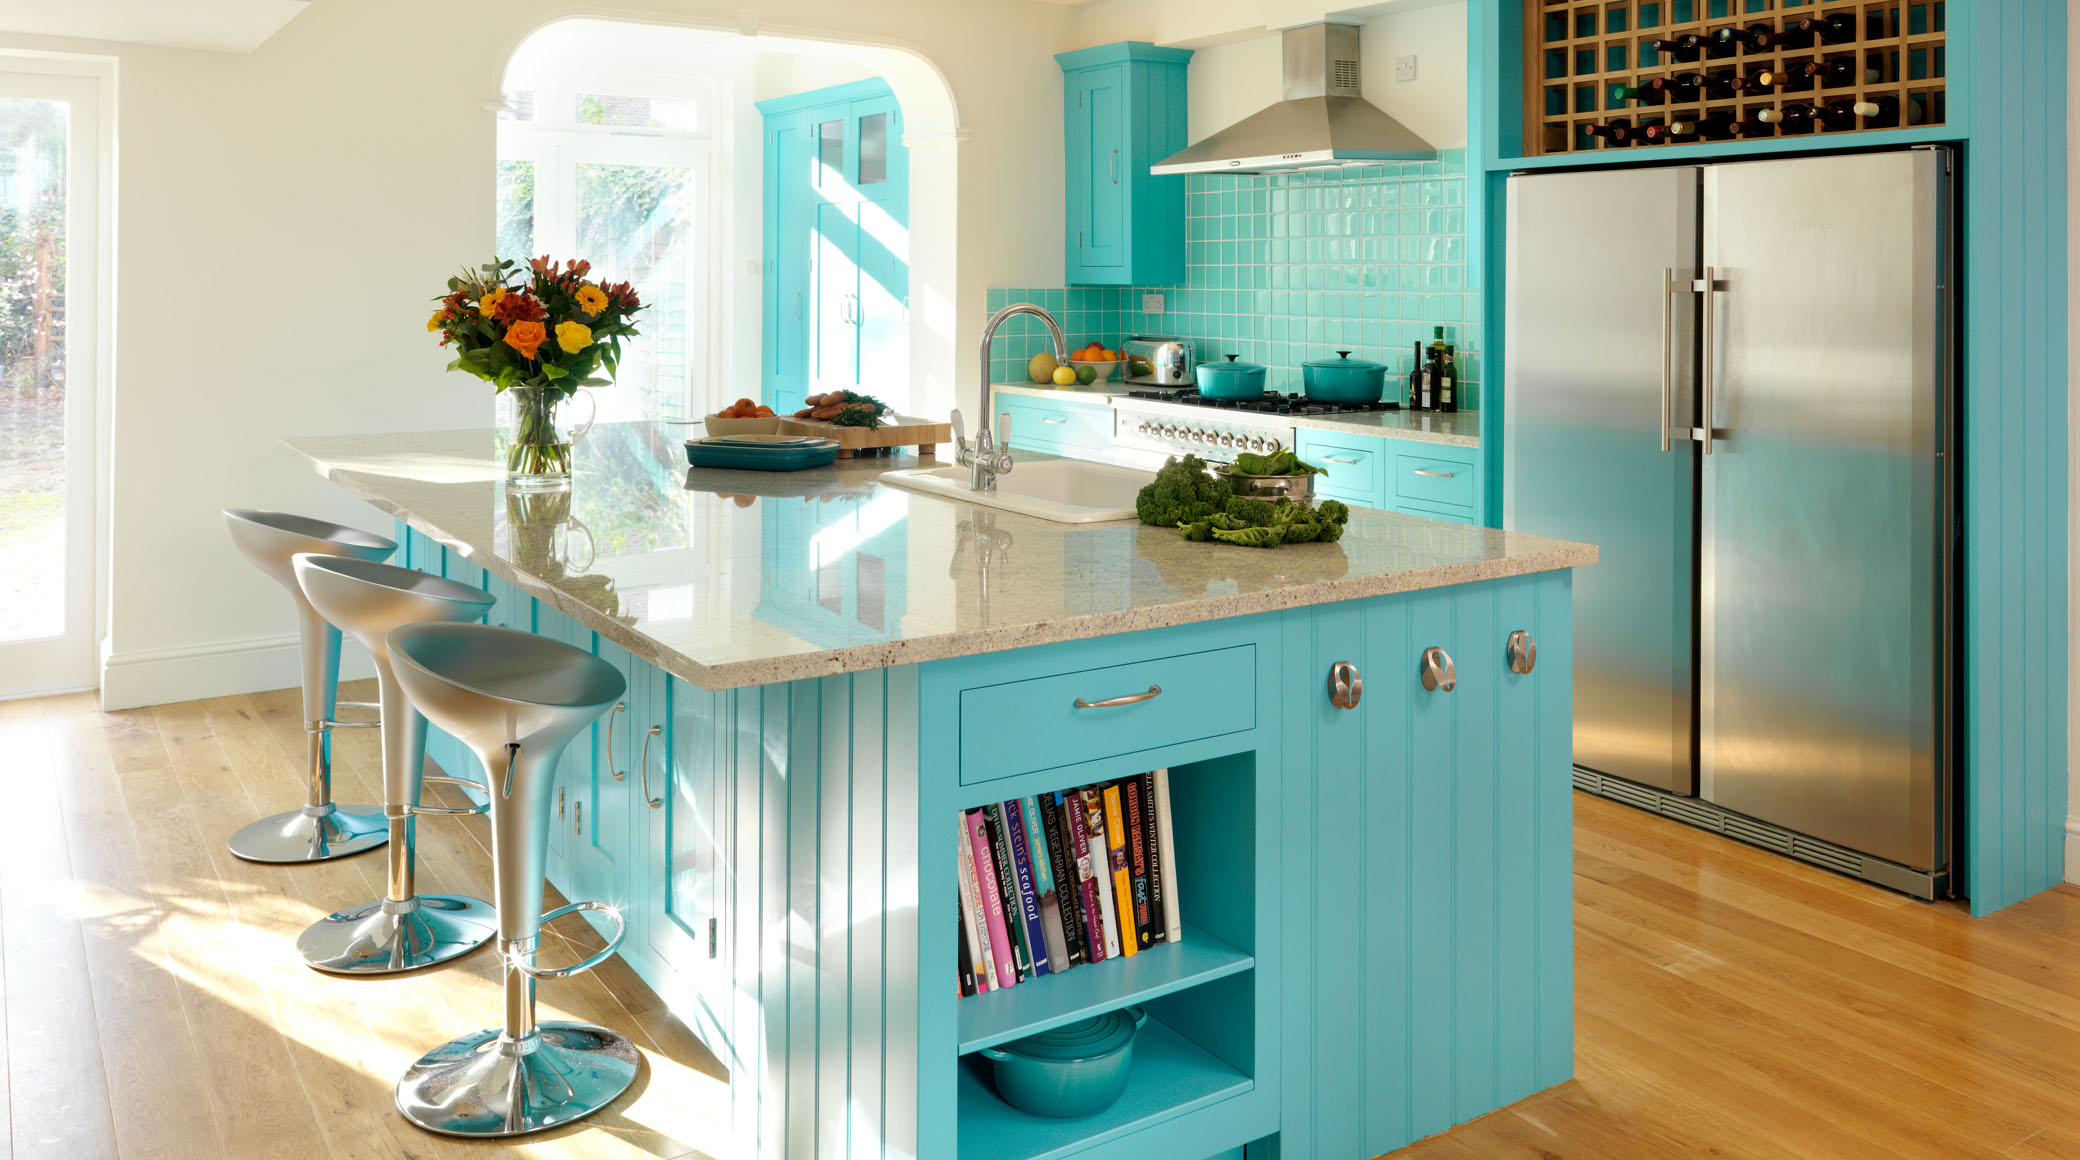 Small Kitchen And Bar In Turquoise Color With Luxurious Granite Island Top Elegant